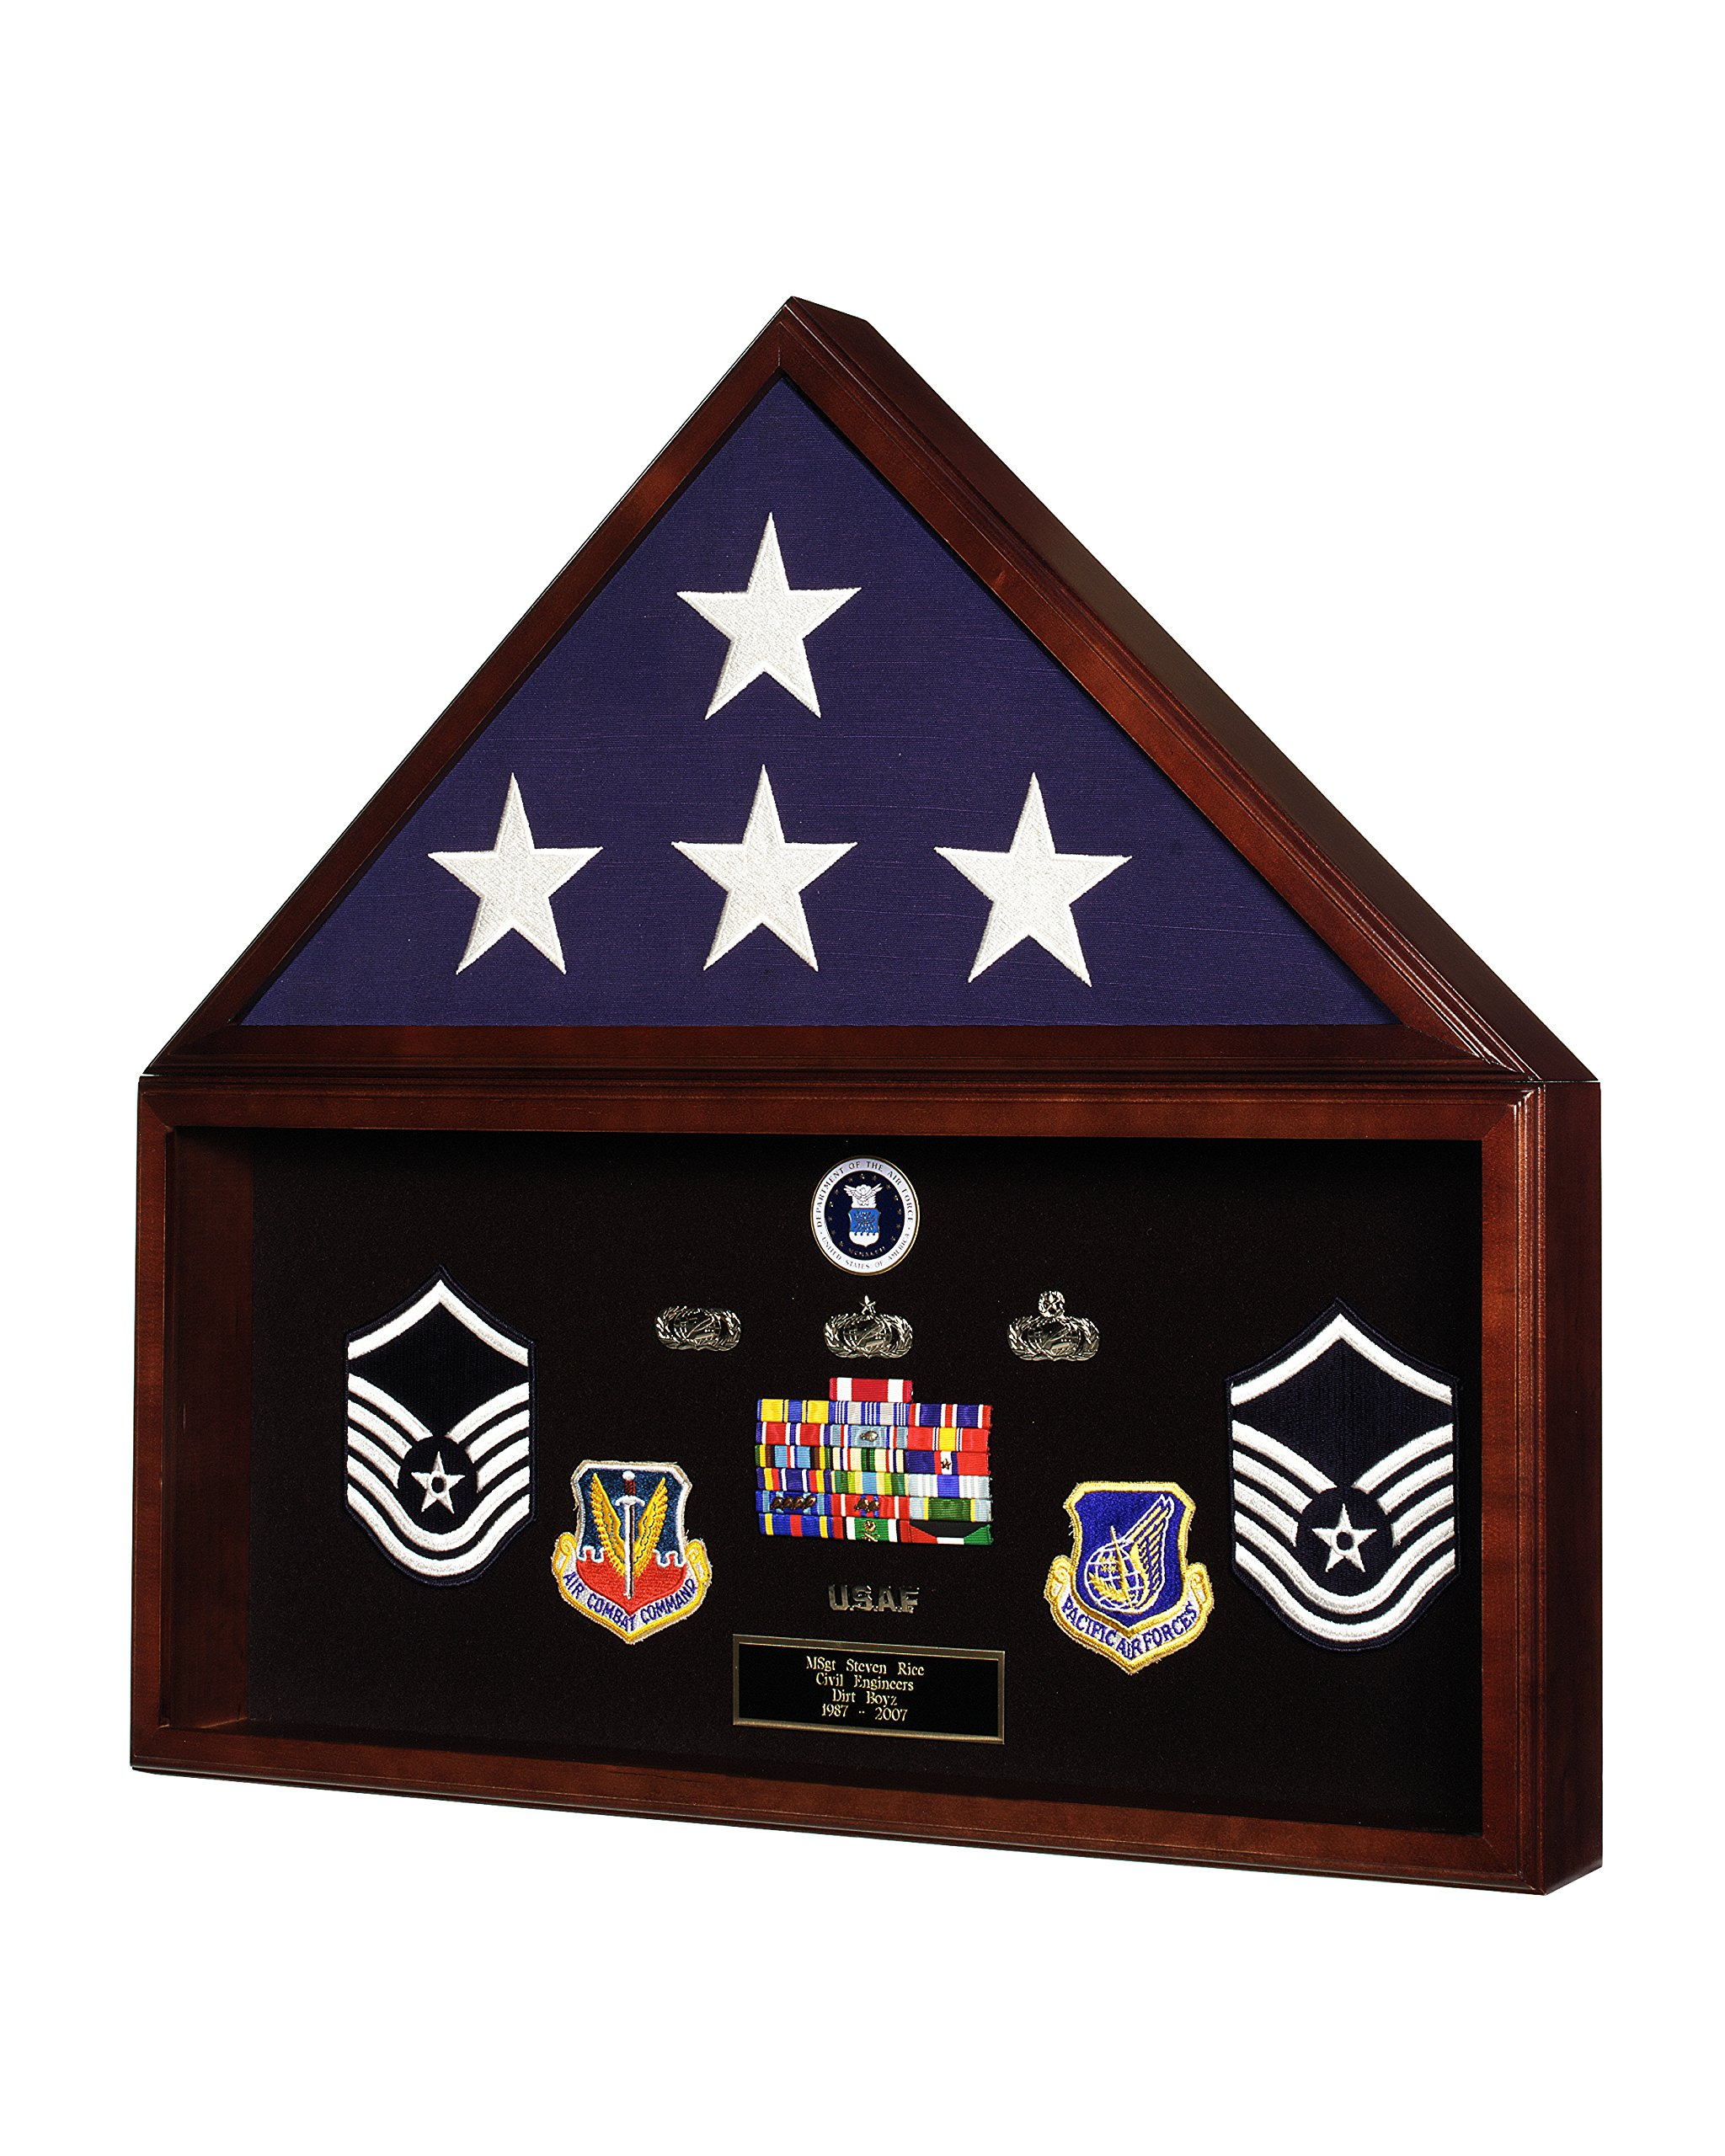 SpartaCraft Military Retirement Shadow Box & Memorial American Flag Case Memorabilia Display Case Made In America. by SpartaCraft